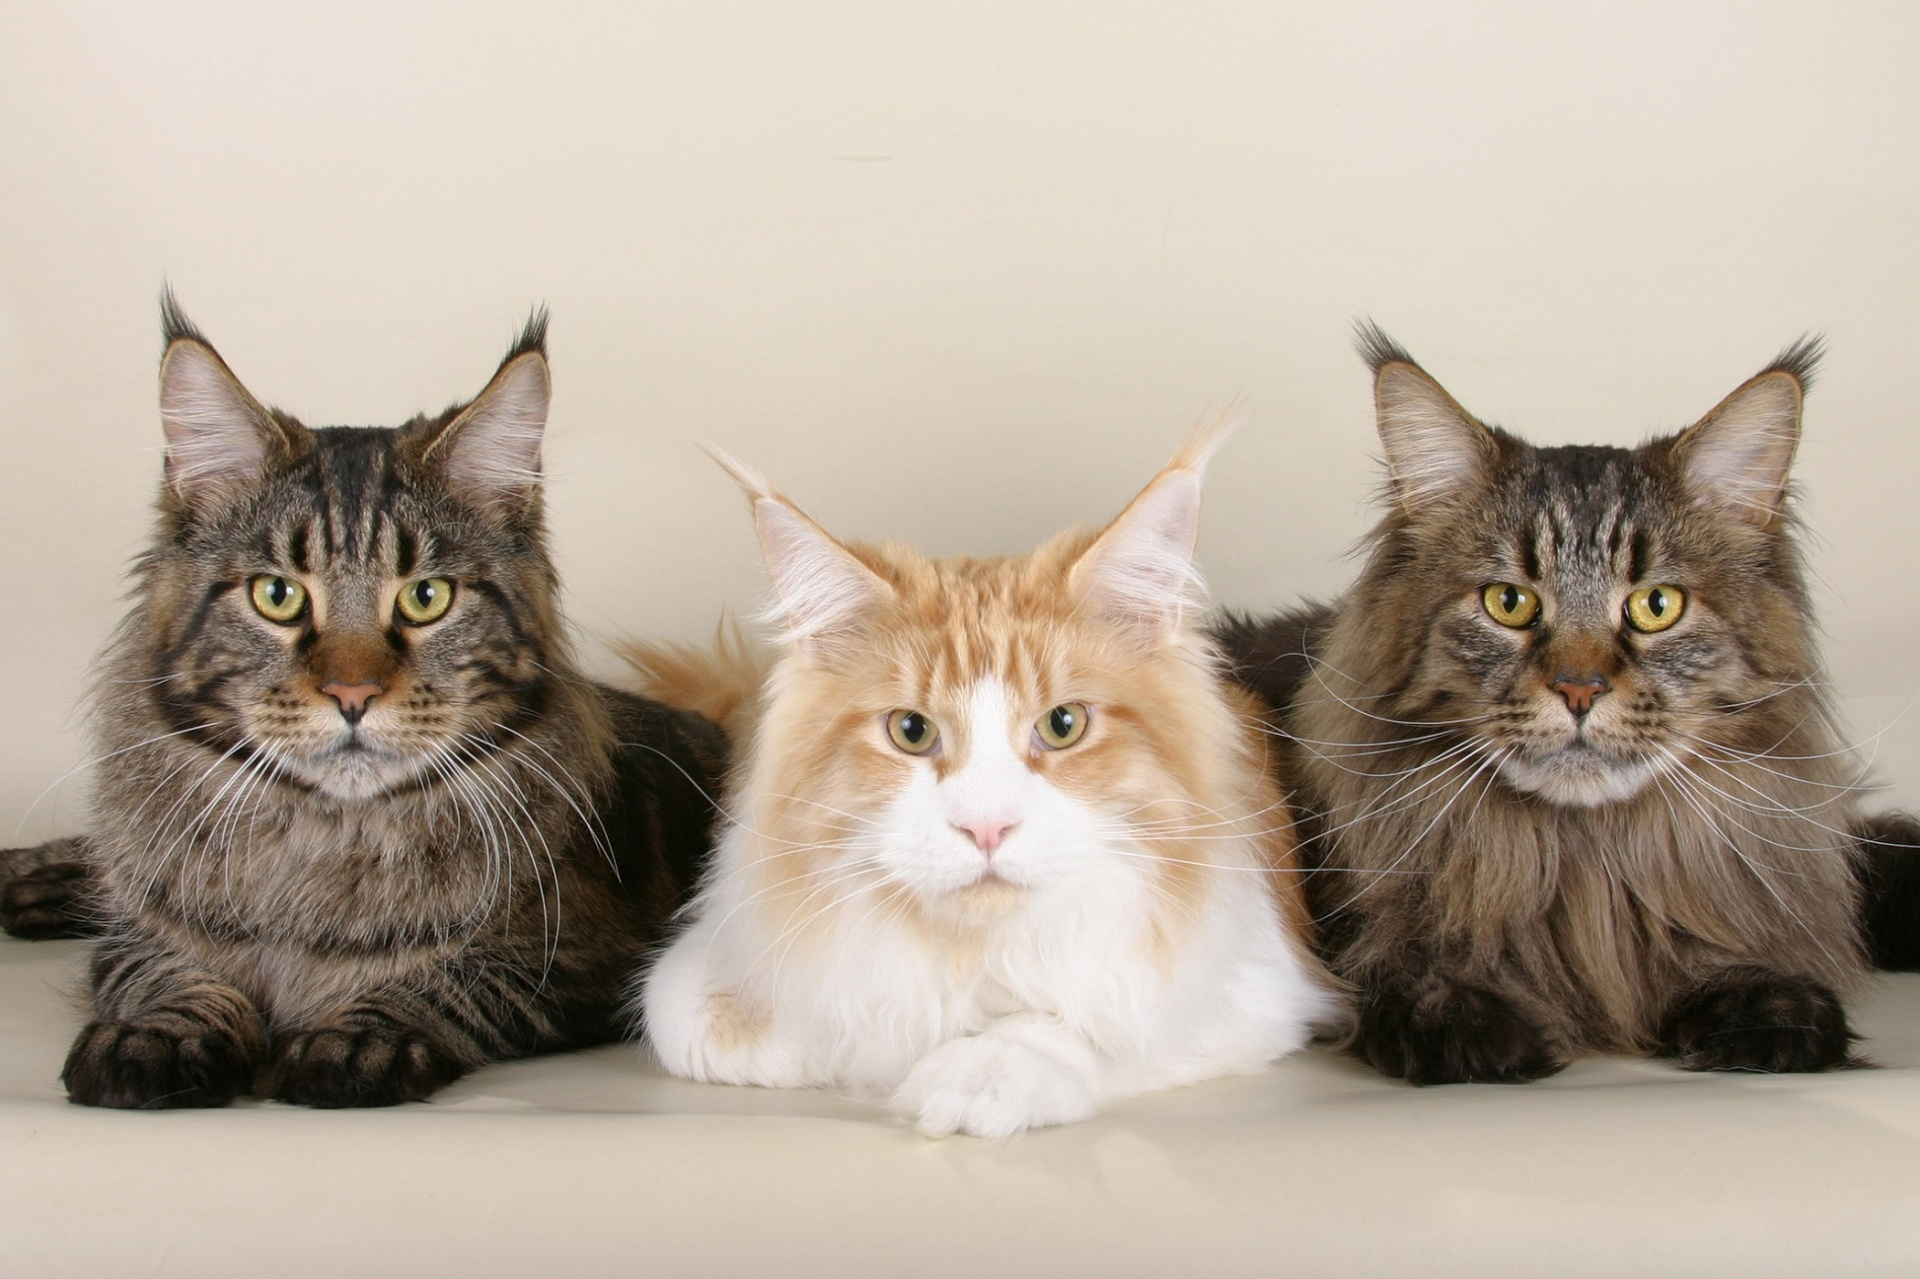 Maine Coon Cats: Meet Ludo, Longest Cat in the World